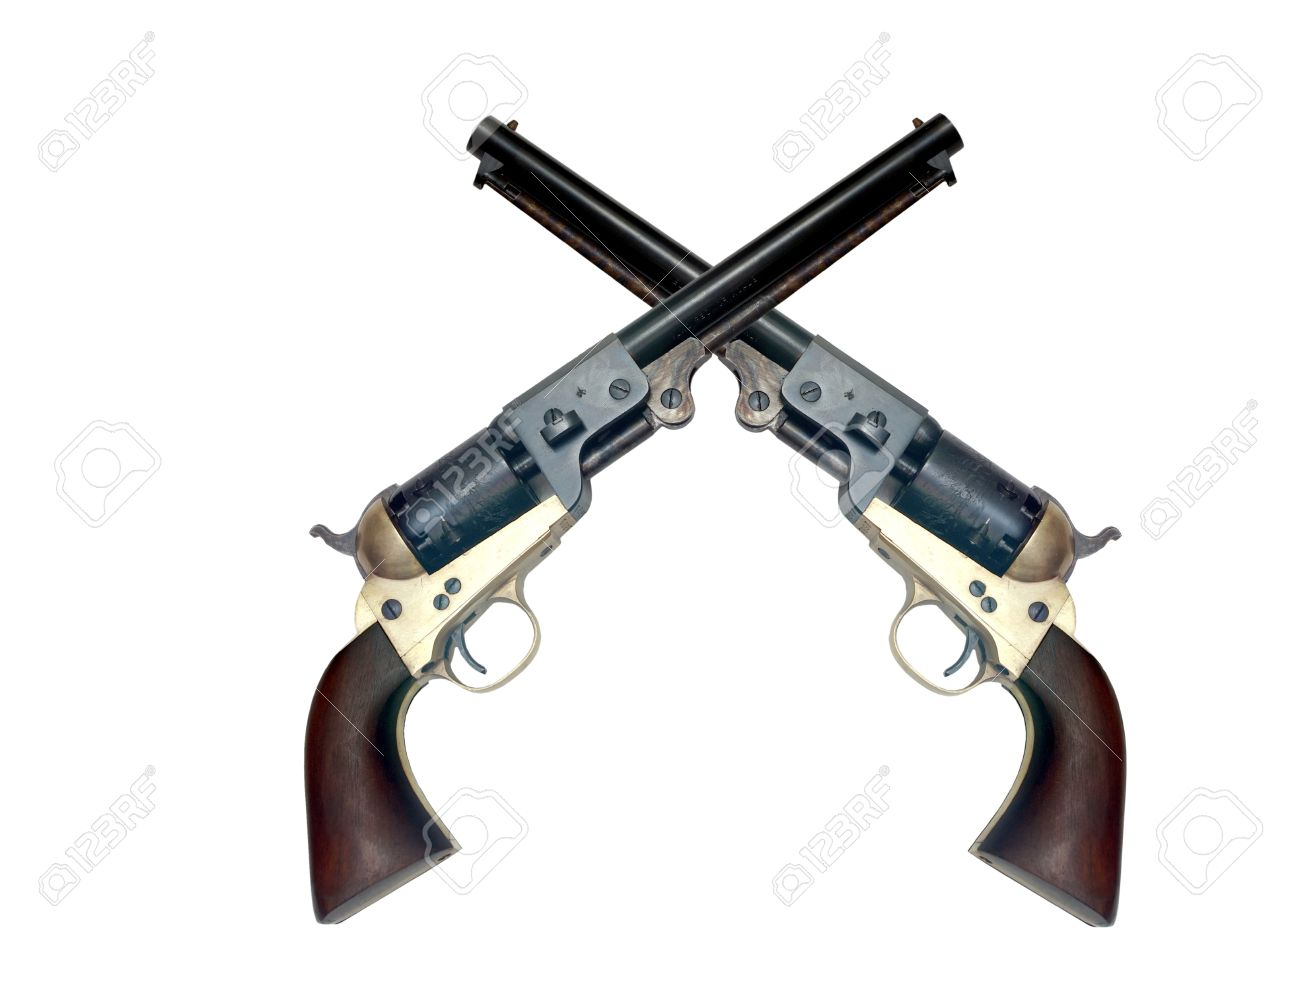 Western Revolver Gun 11052912-two-old-metal-colt-